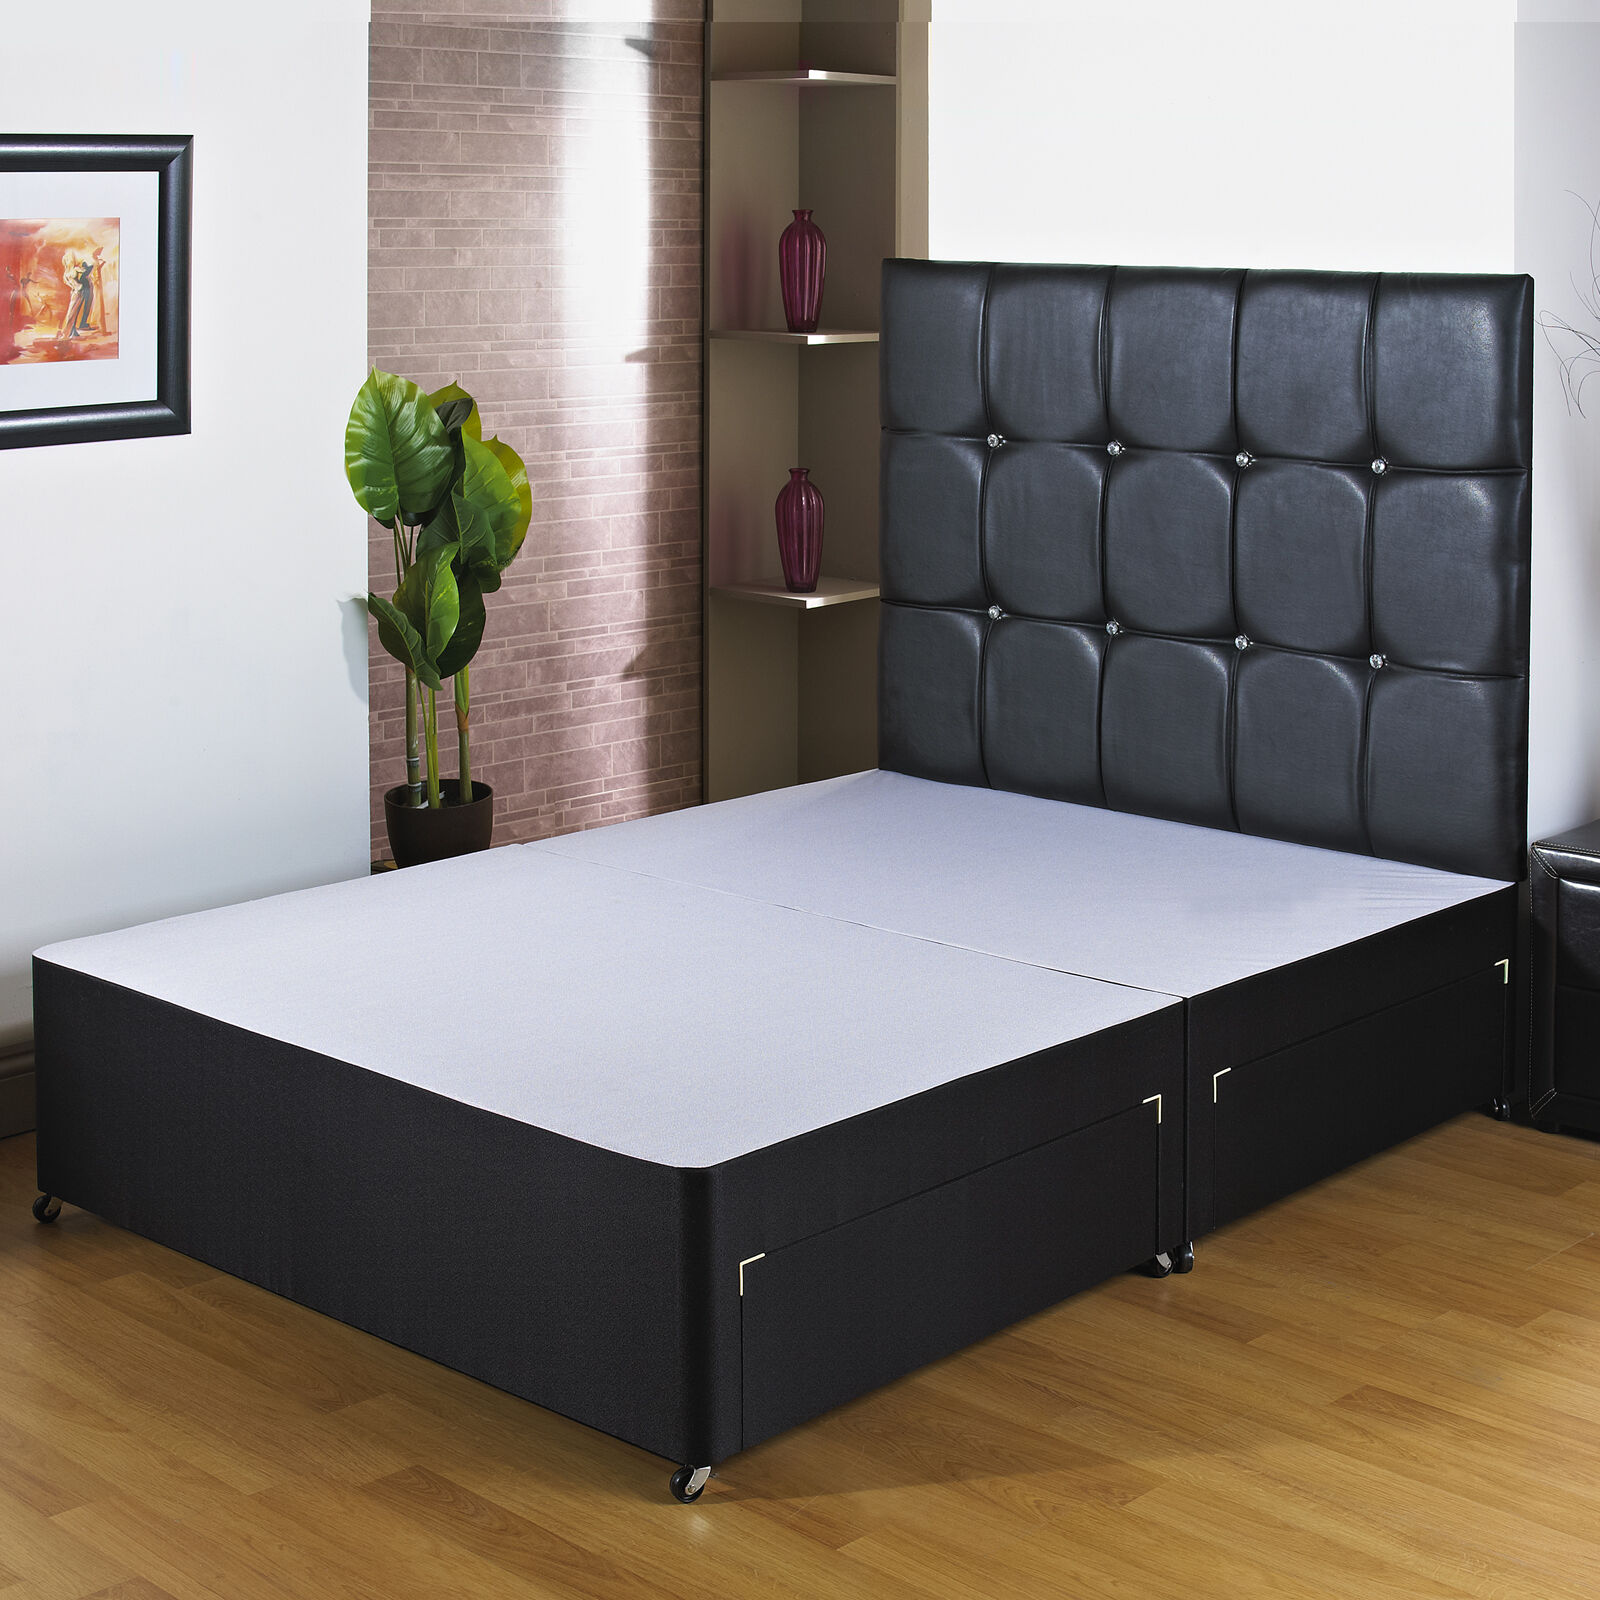 Details About White 3 Piece Storage Drawers Twin Bed Box: FREE END DRAWER! BLACK DIVAN BED BASE +STORAGE 3FT6/4FT